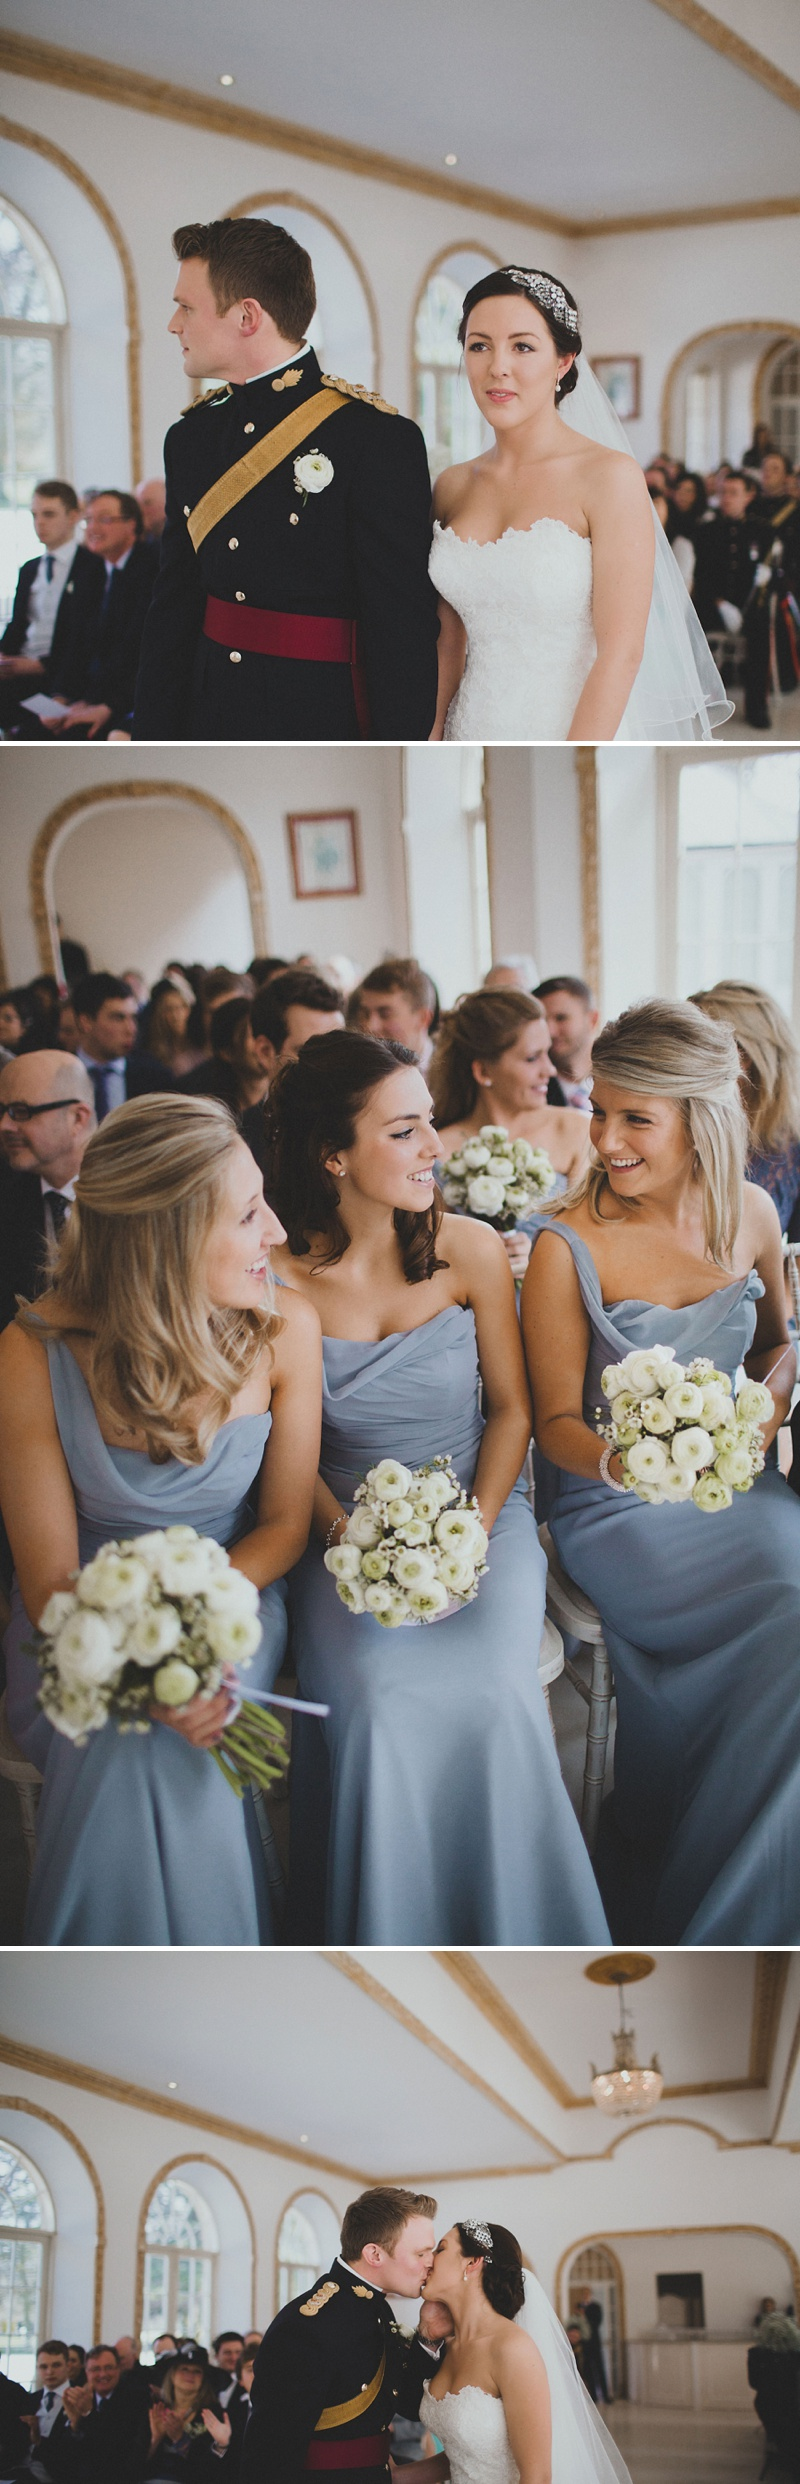 Jim Hjelm Grey Bridesmaid Dresses